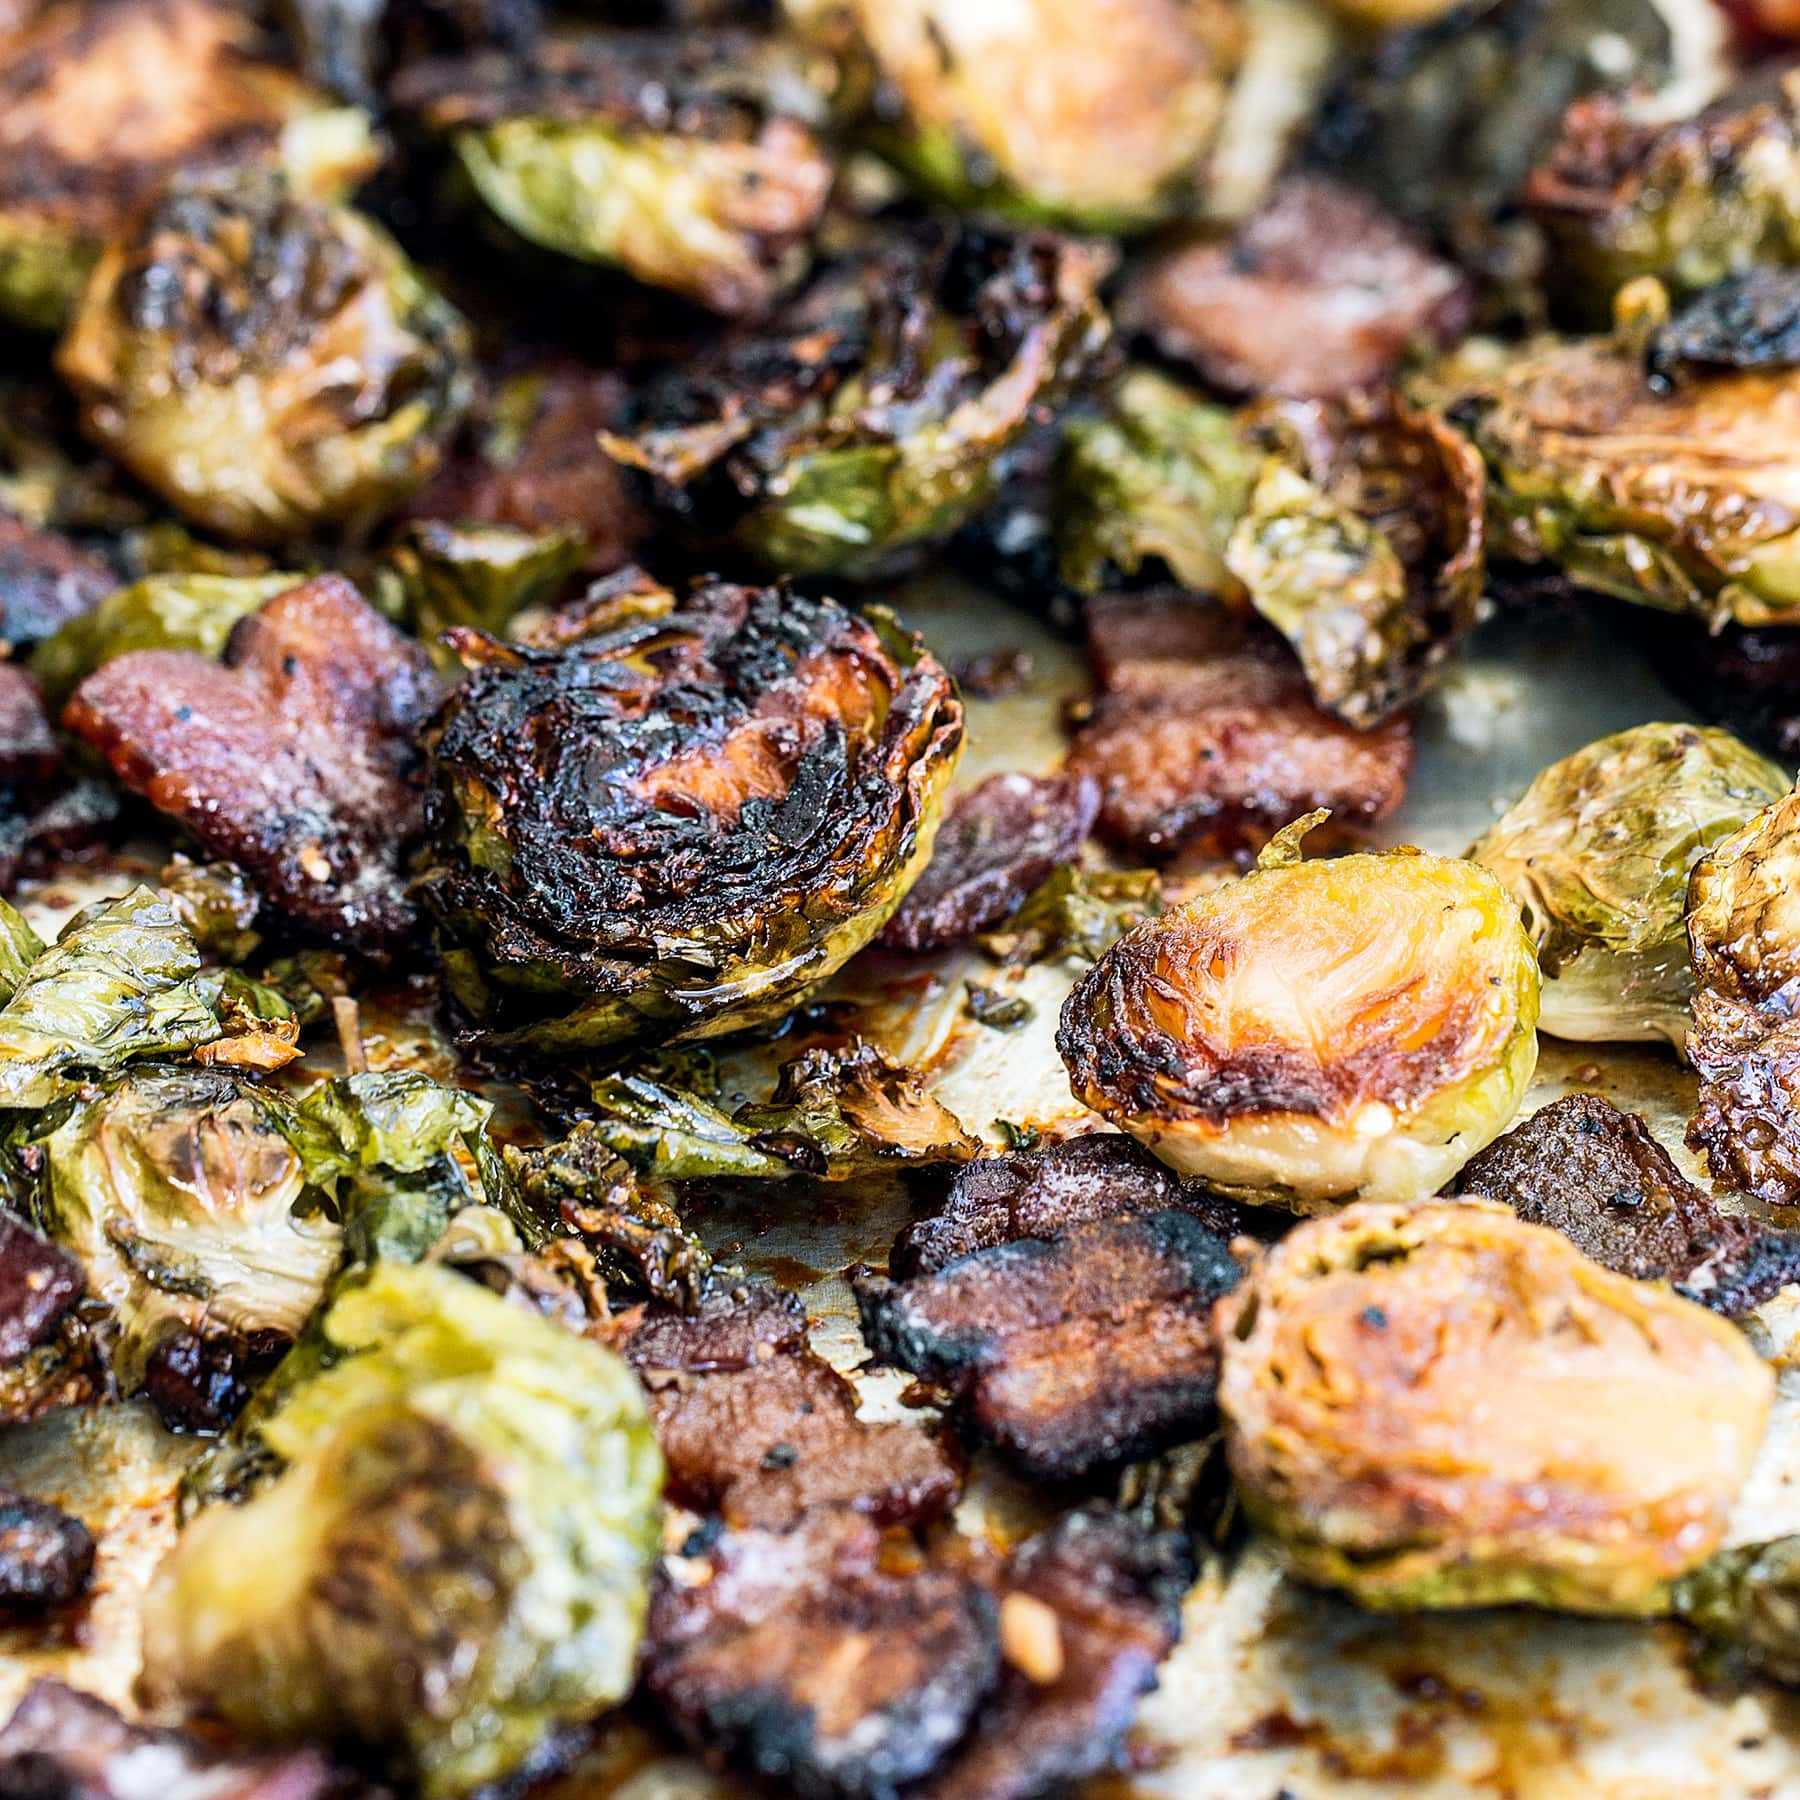 Maple Bacon Brussels Sprouts feature caramelized roasted Brussels sprouts with crispy bits of bacon and a touch of sweetness from the maple syrup. One pan three ingredient recipe!